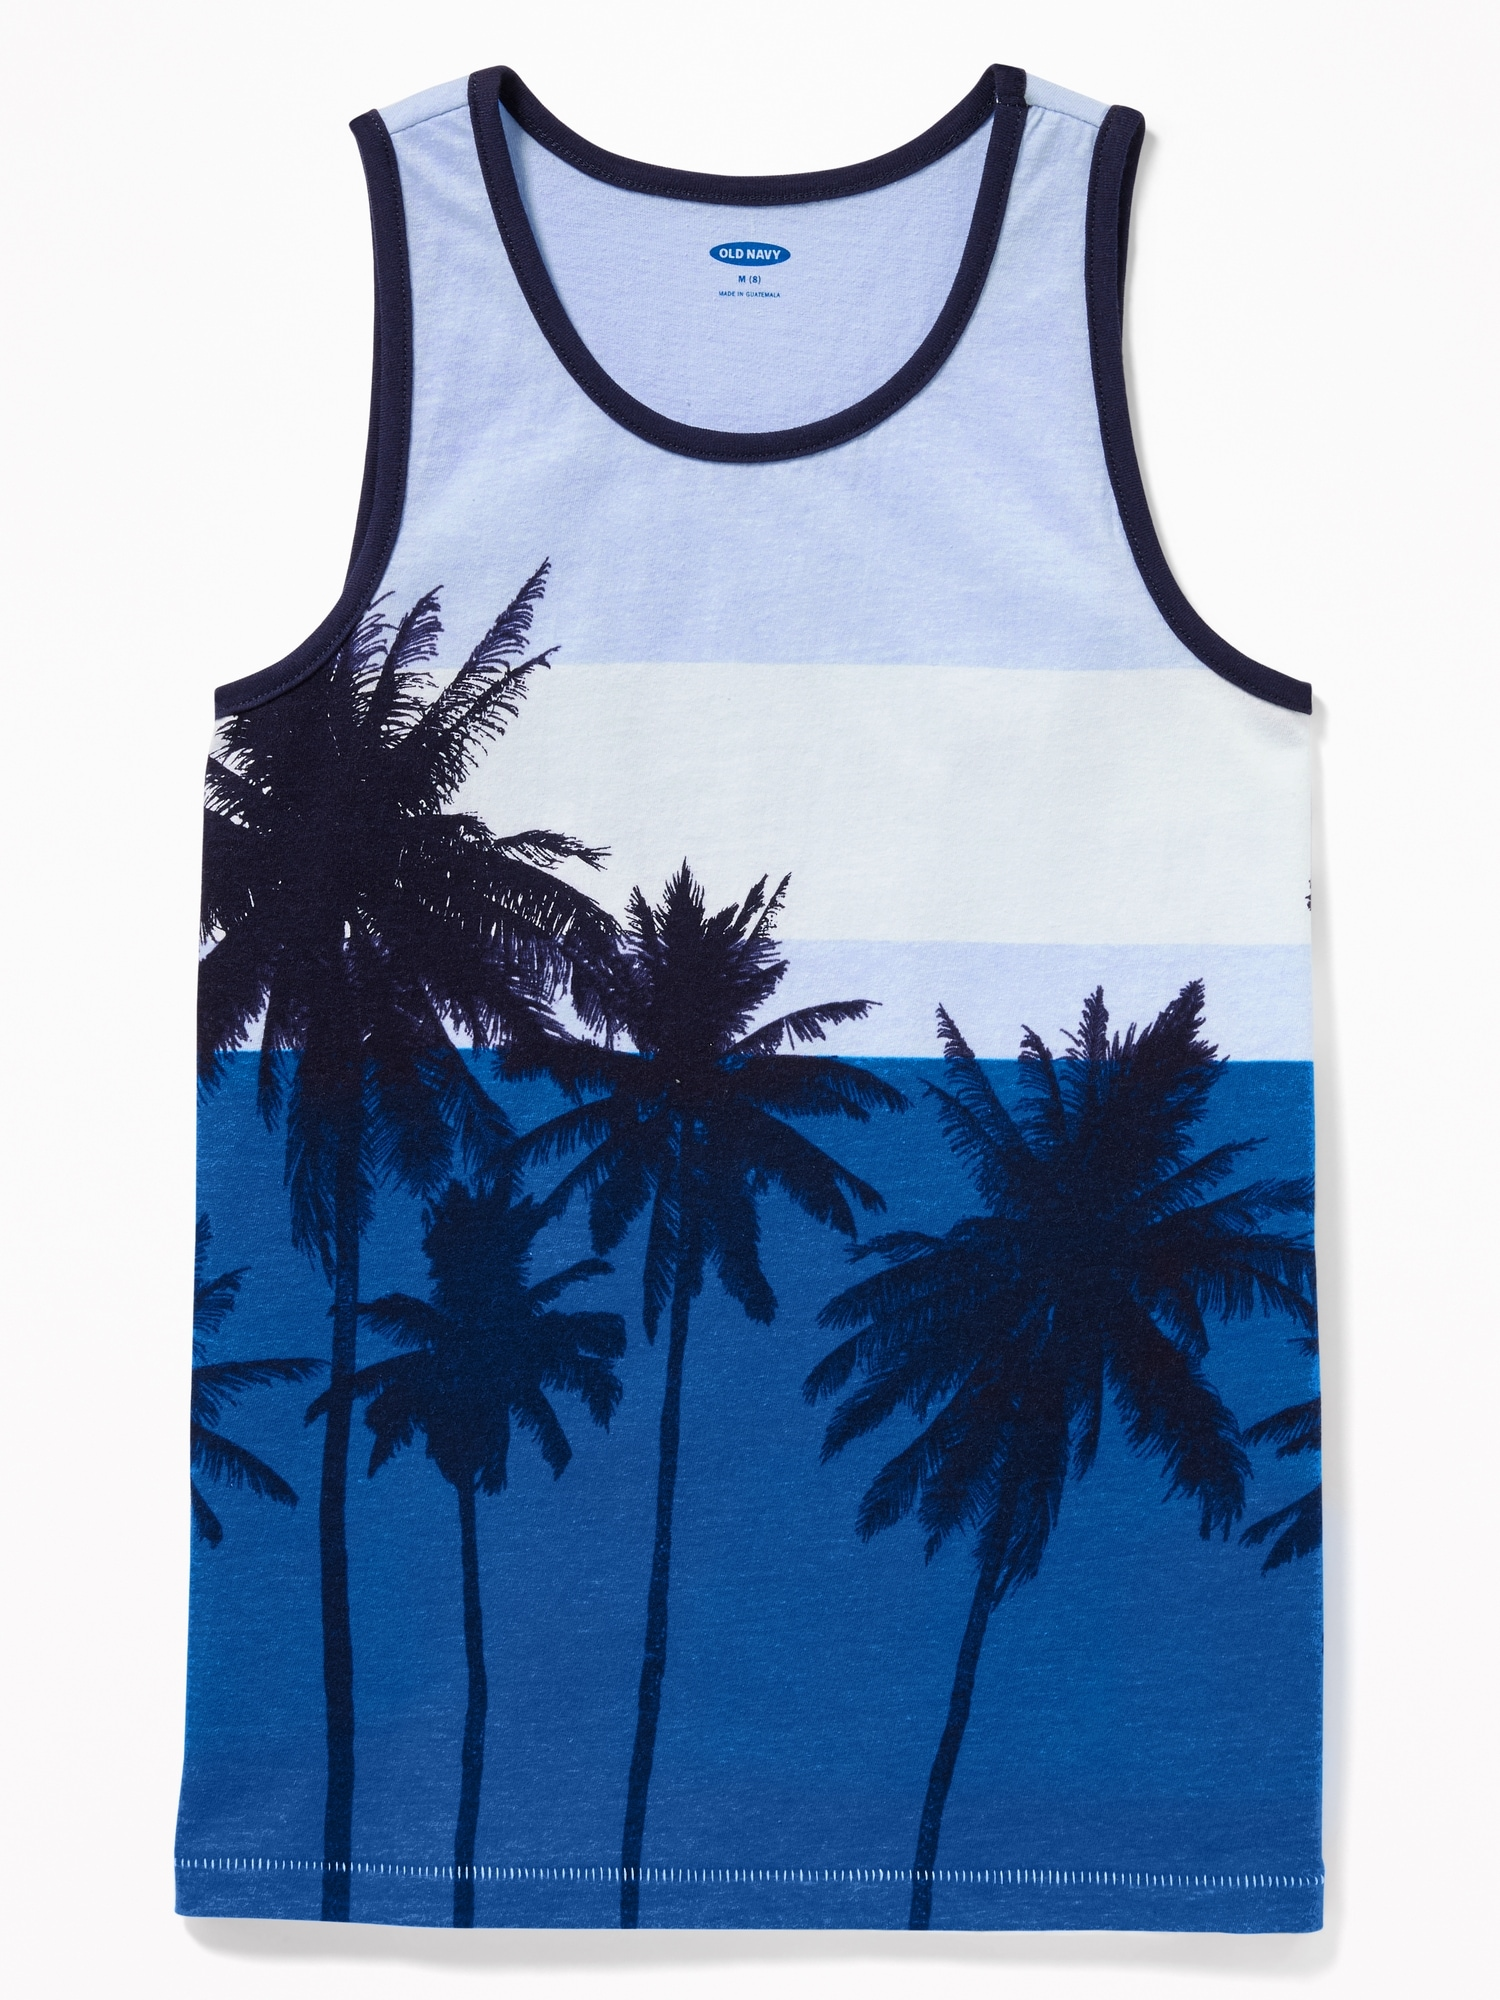 Relaxed Printed Tank For Boys by Old Navy